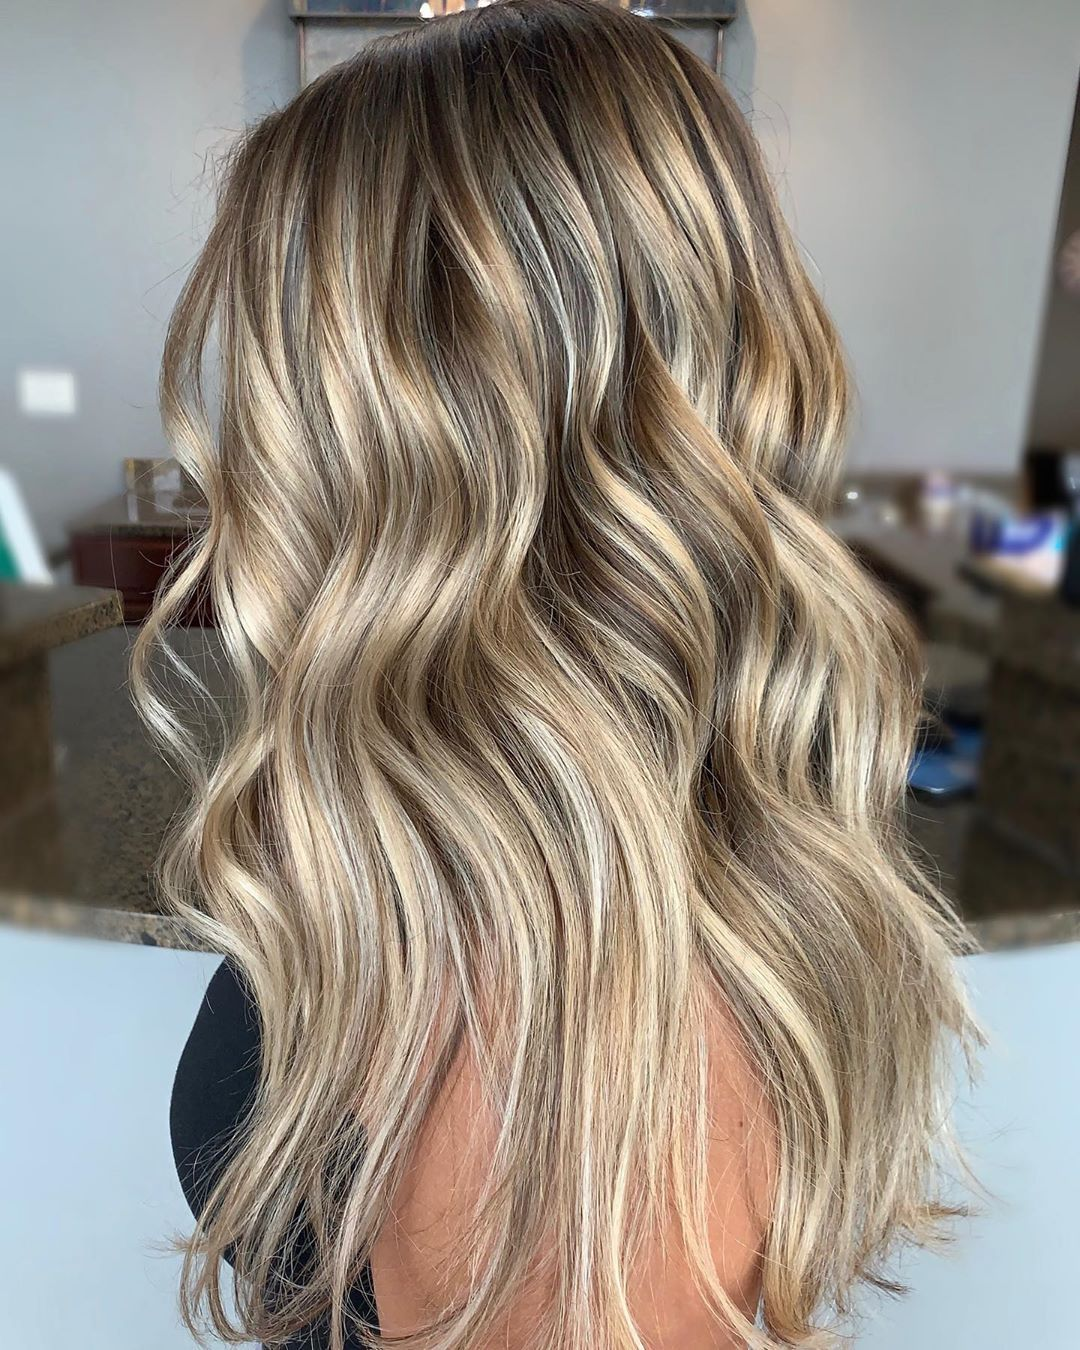 H A I R S T Y L I S T On Instagram O B S E S S E D Hairbycami Redken Shades Gloss 10n 10vv Hairstylis Hair Color Highlights Hair Color Redken